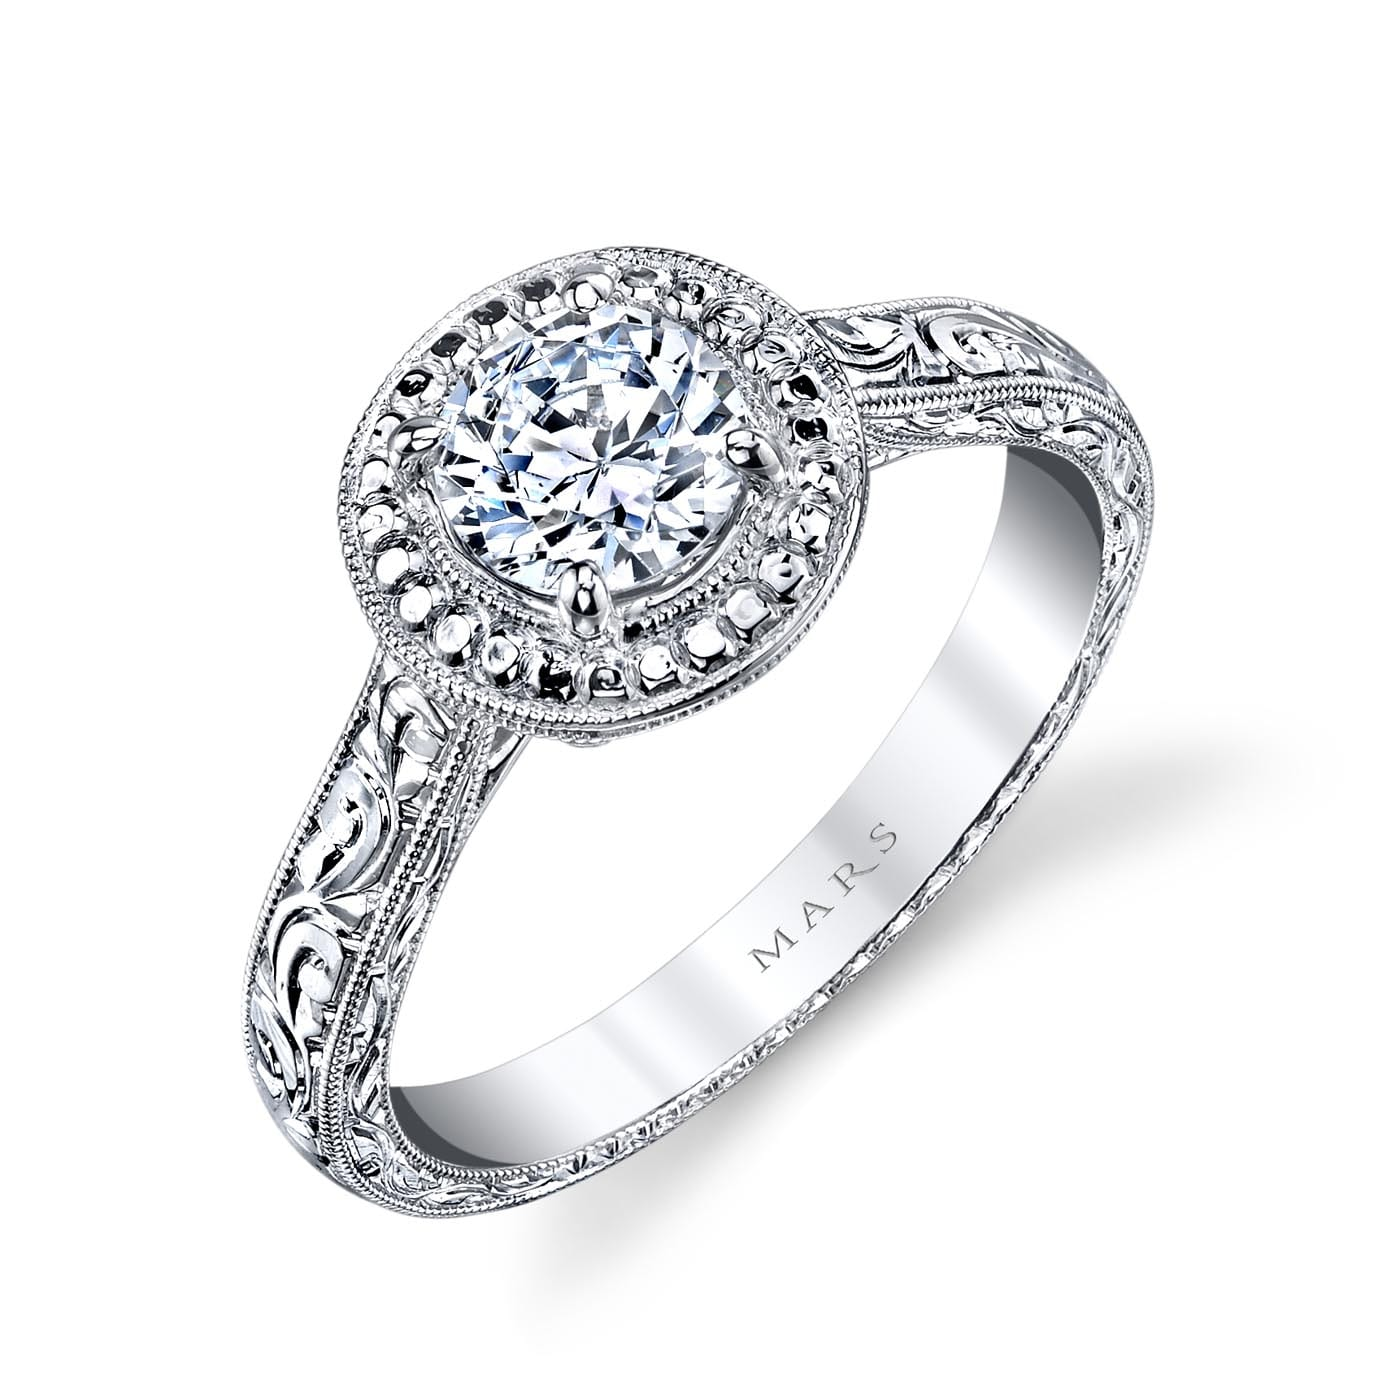 Halo Engagement RingStyle #: MARS 14761HE